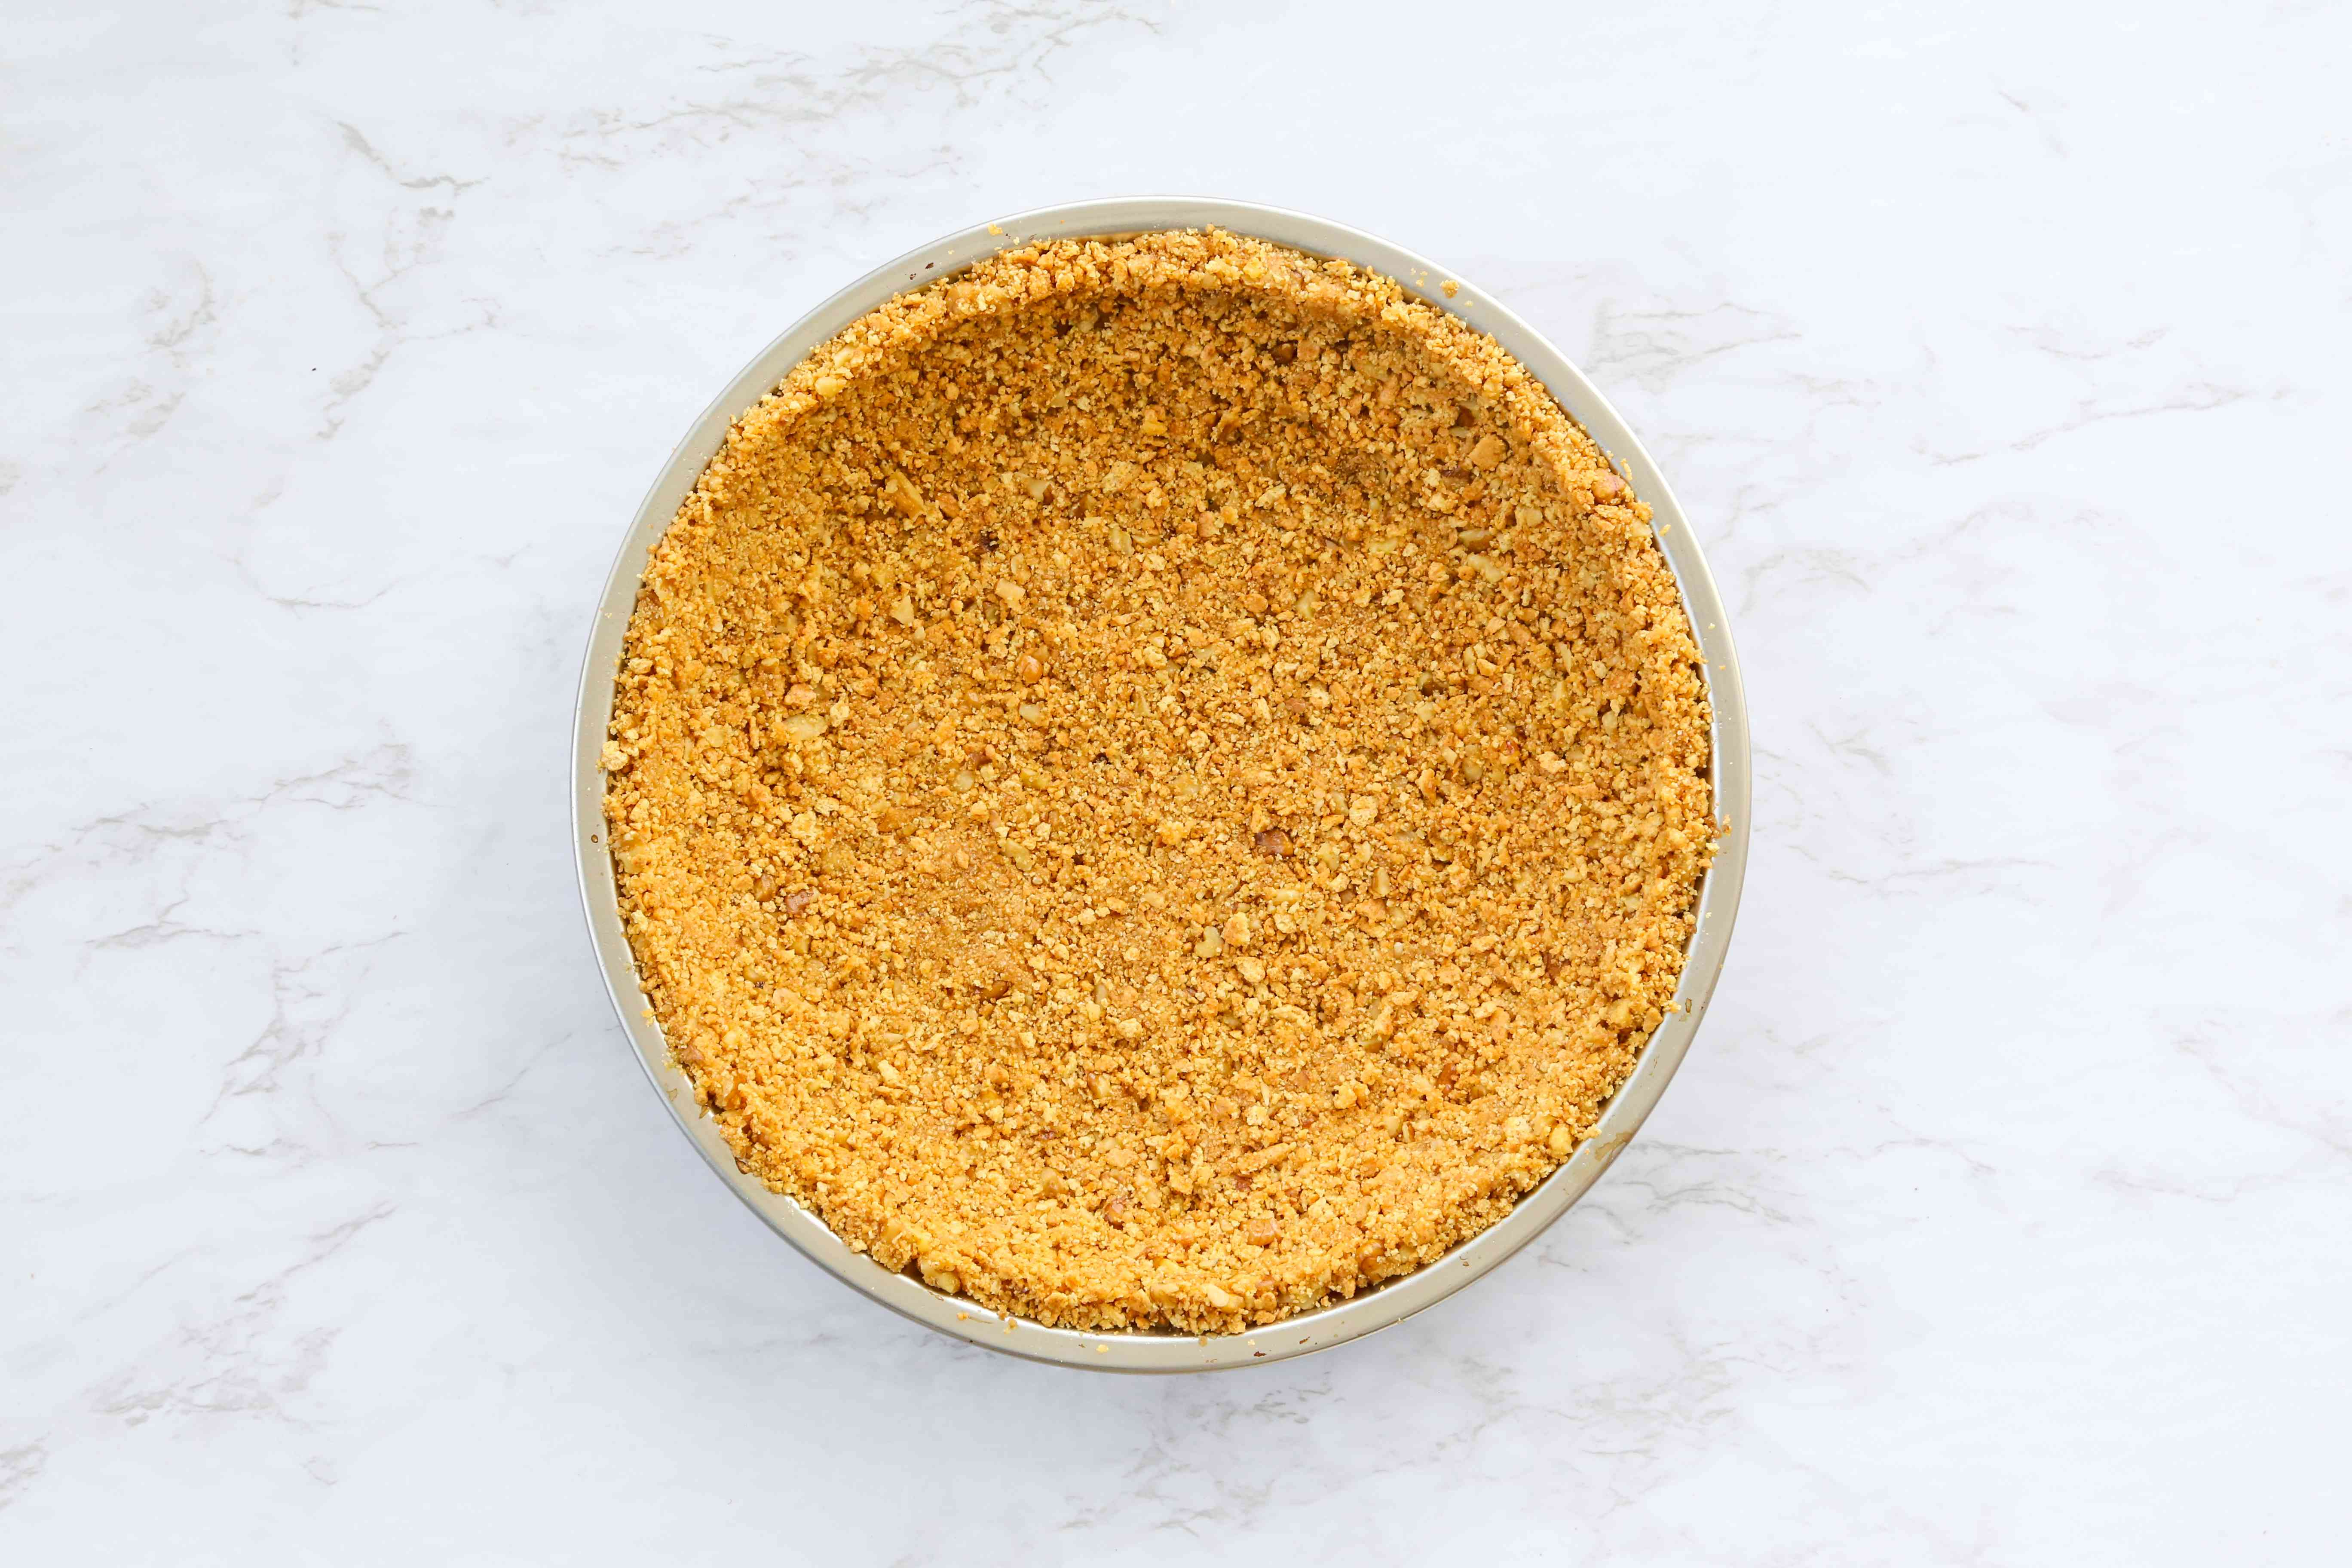 Press the graham cracker mixture into the bottom of a pie dish